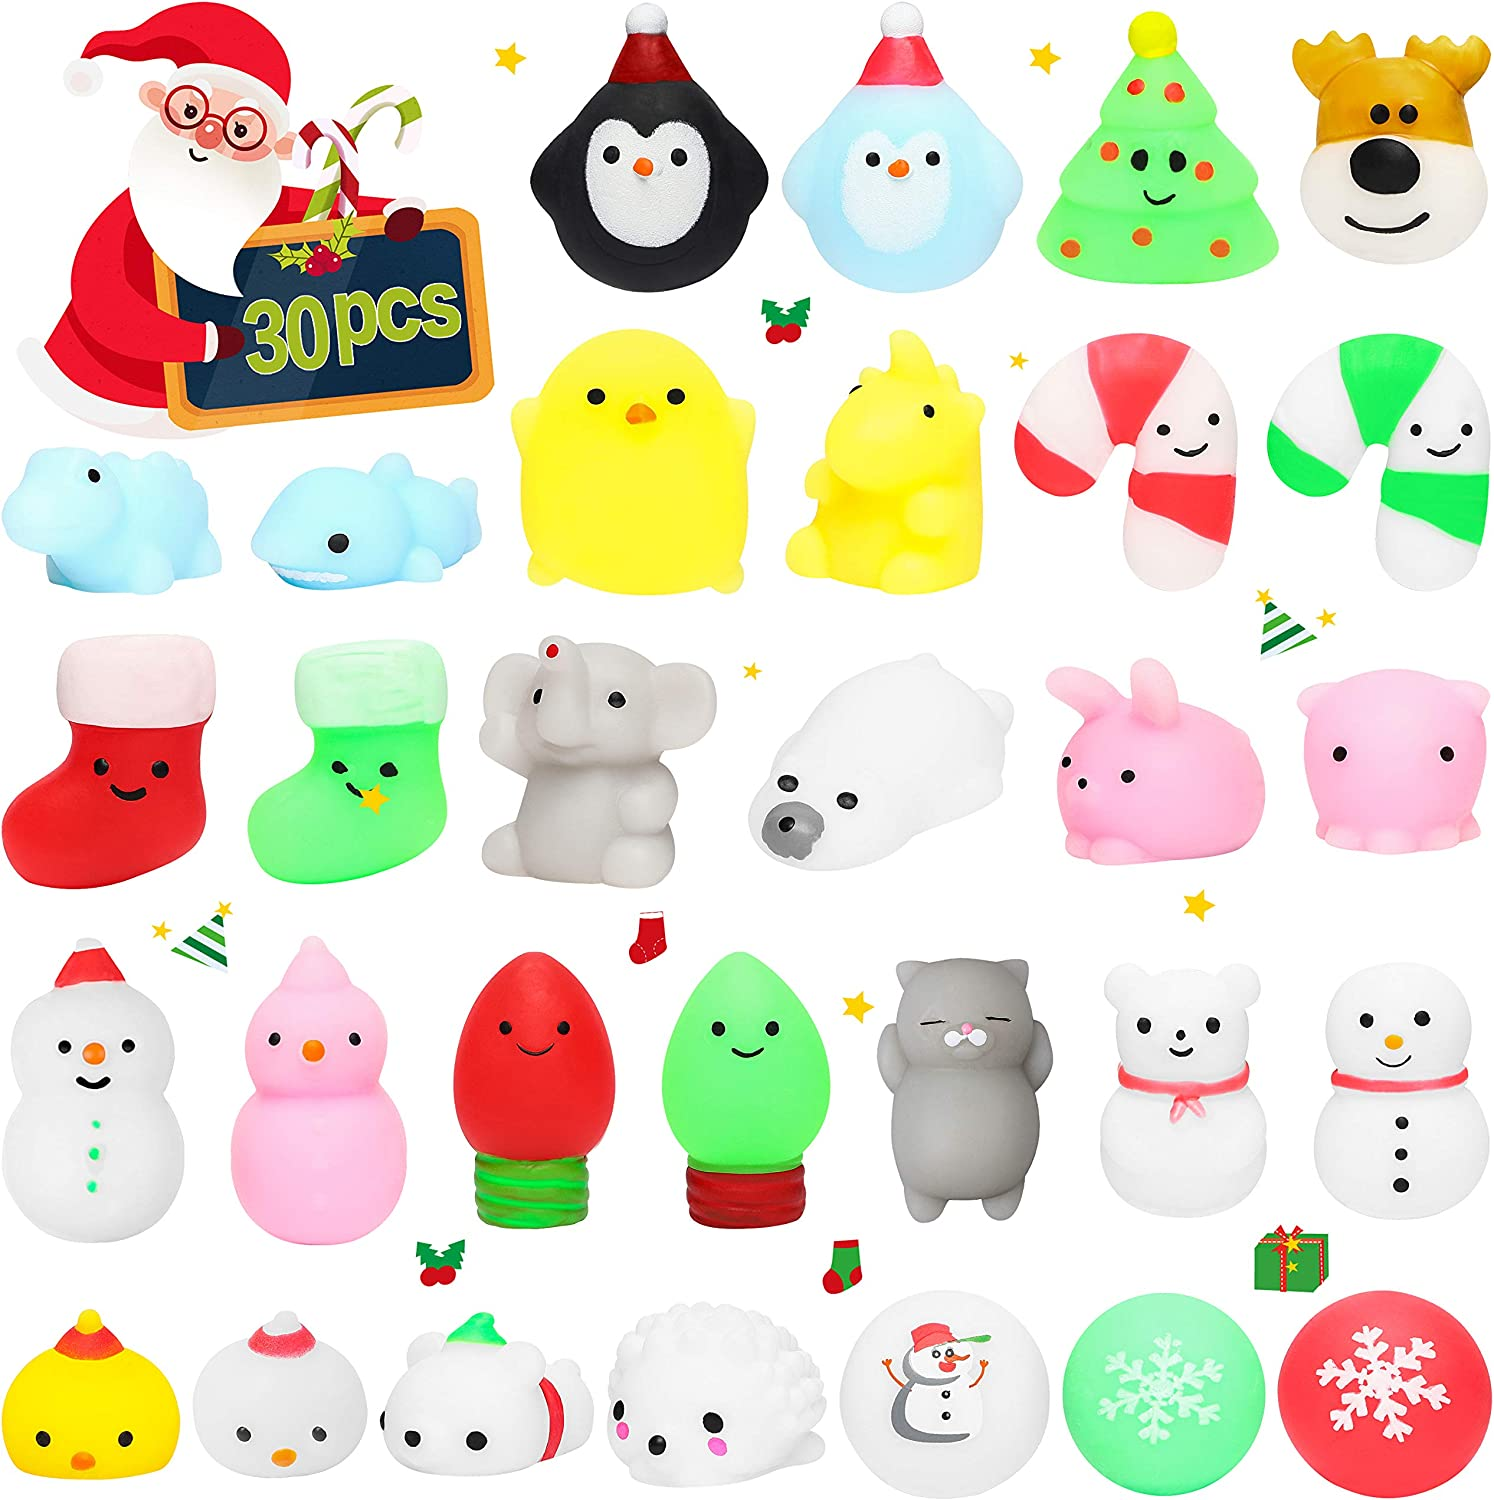 Merry Christmas Decorations with Xmas Santa Snowman Birthday Gifts Stress Relief Hand Toys Kawaii Animals Squeeze Cat Squishies WATINC 30Pcs Christmas Mochi Squishies Toy for Kids Party Favors